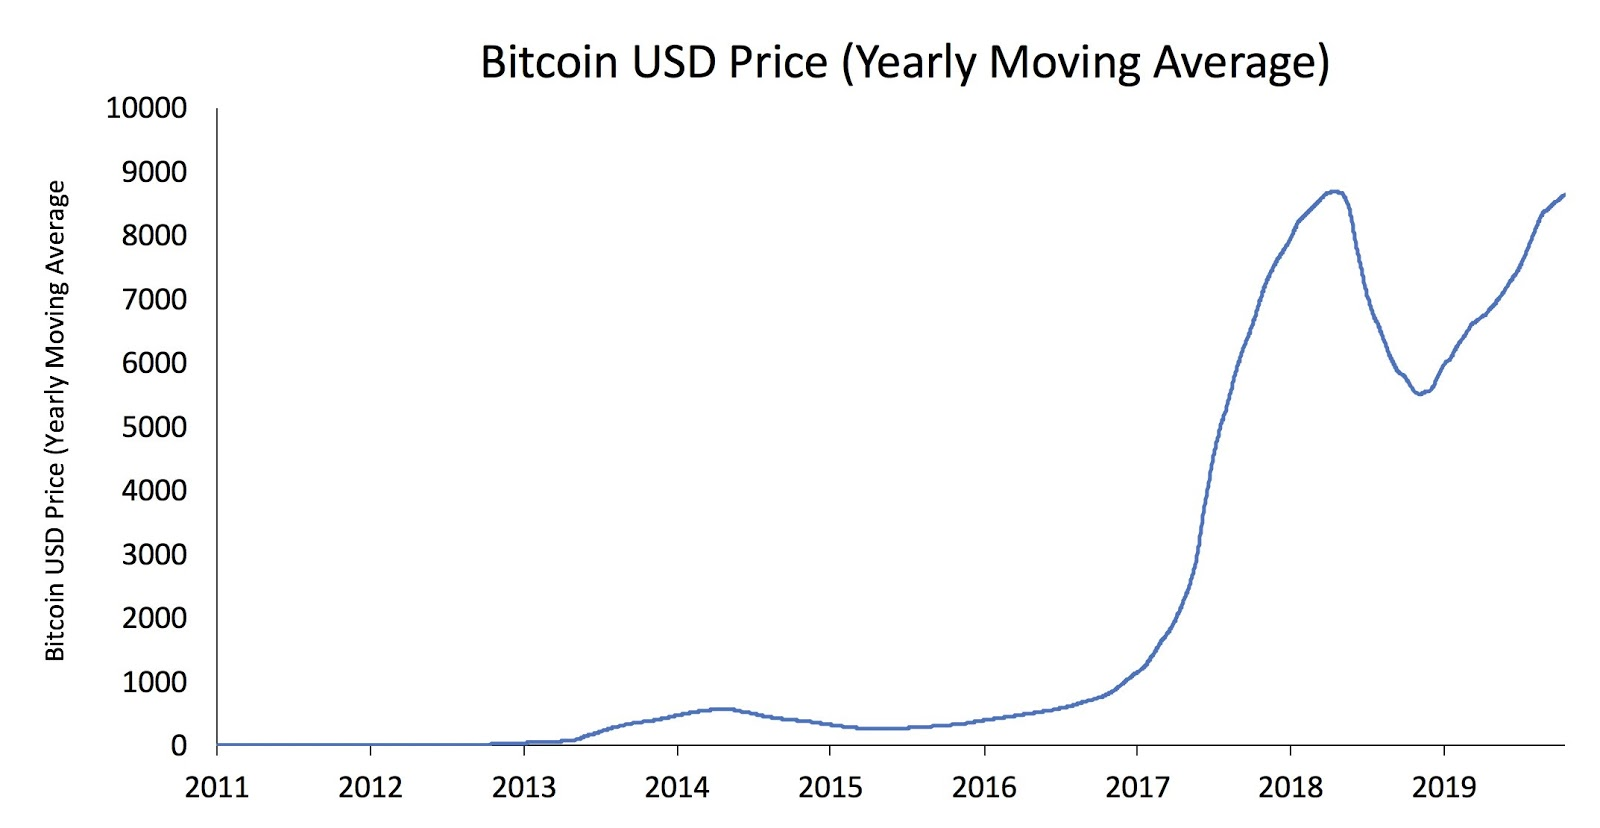 BTC/USD yearly moving average price chart